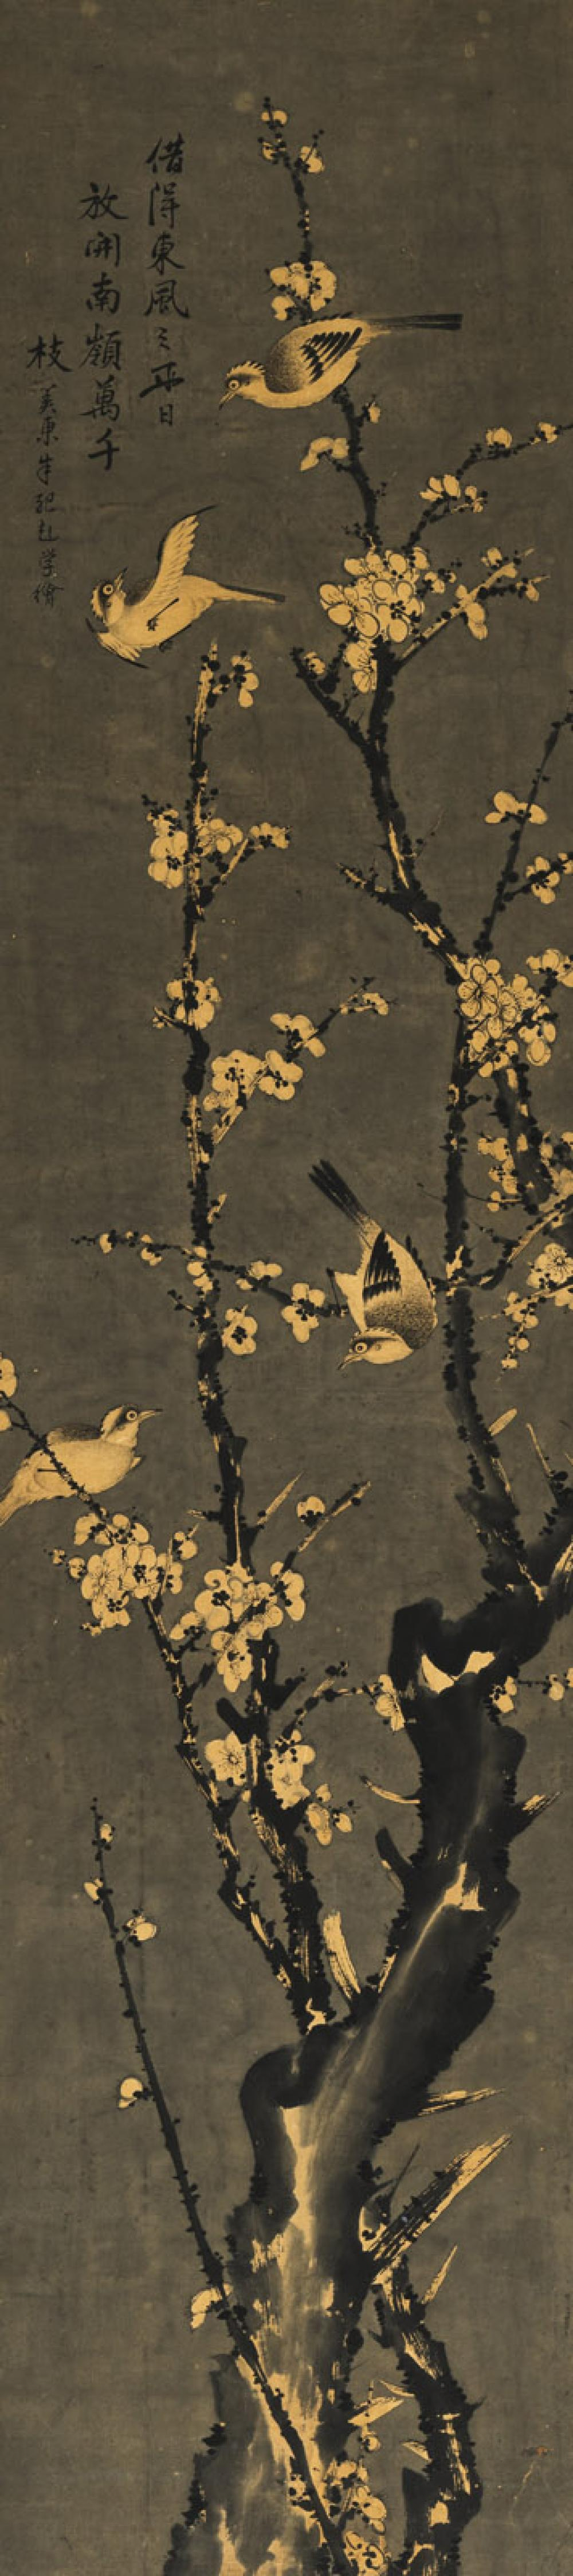 AN INK PAINTING OF A PAIR OF BIRDS AND A FLOWERING PRUNUS